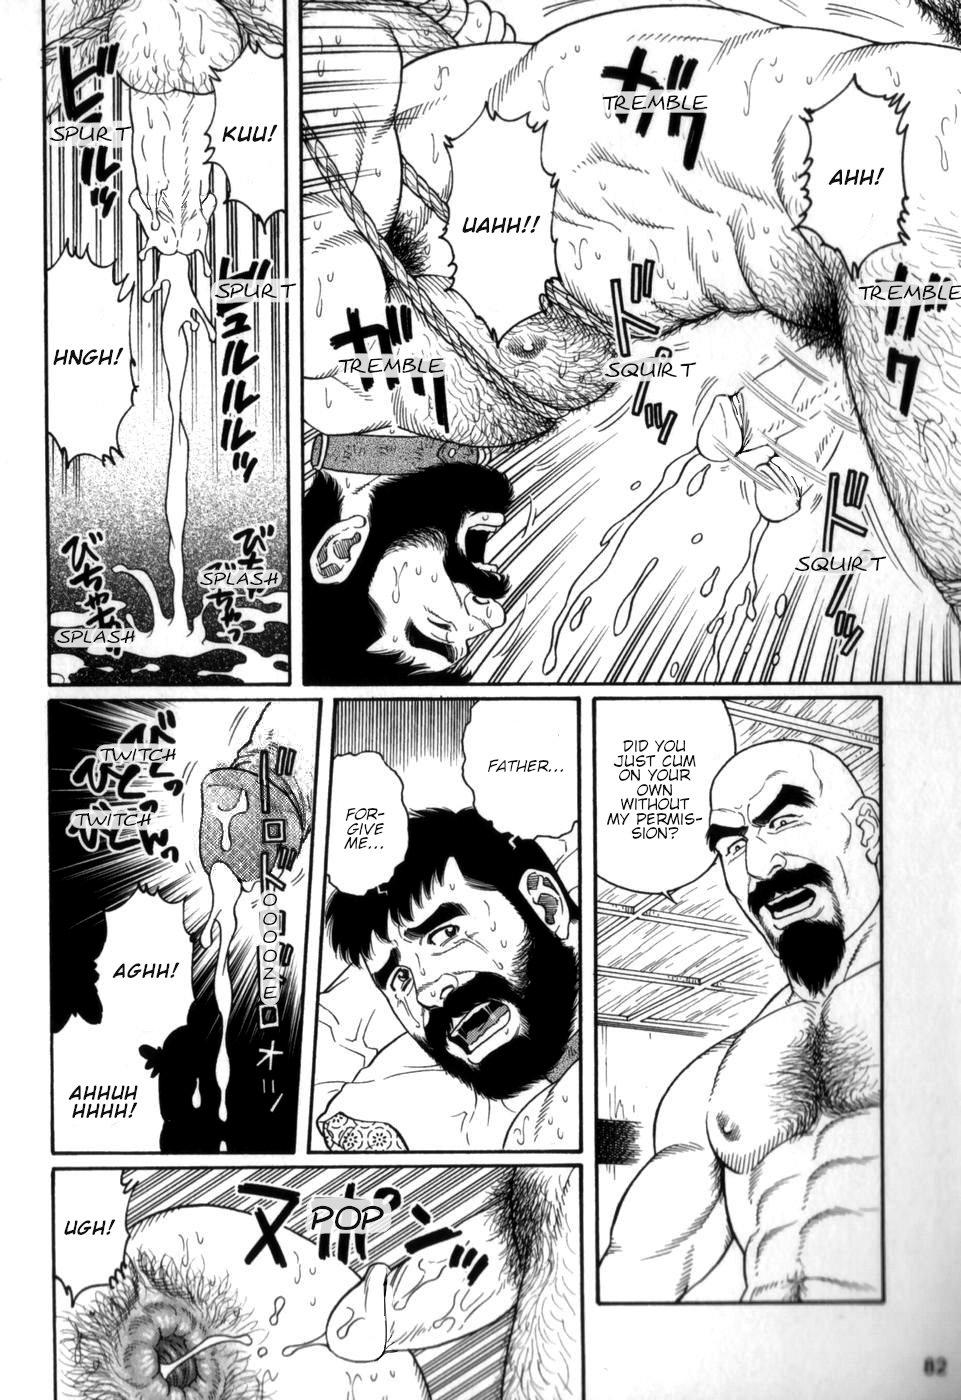 Gedou no Ie Chuukan | House of Brutes Vol. 2 Ch. 3 11